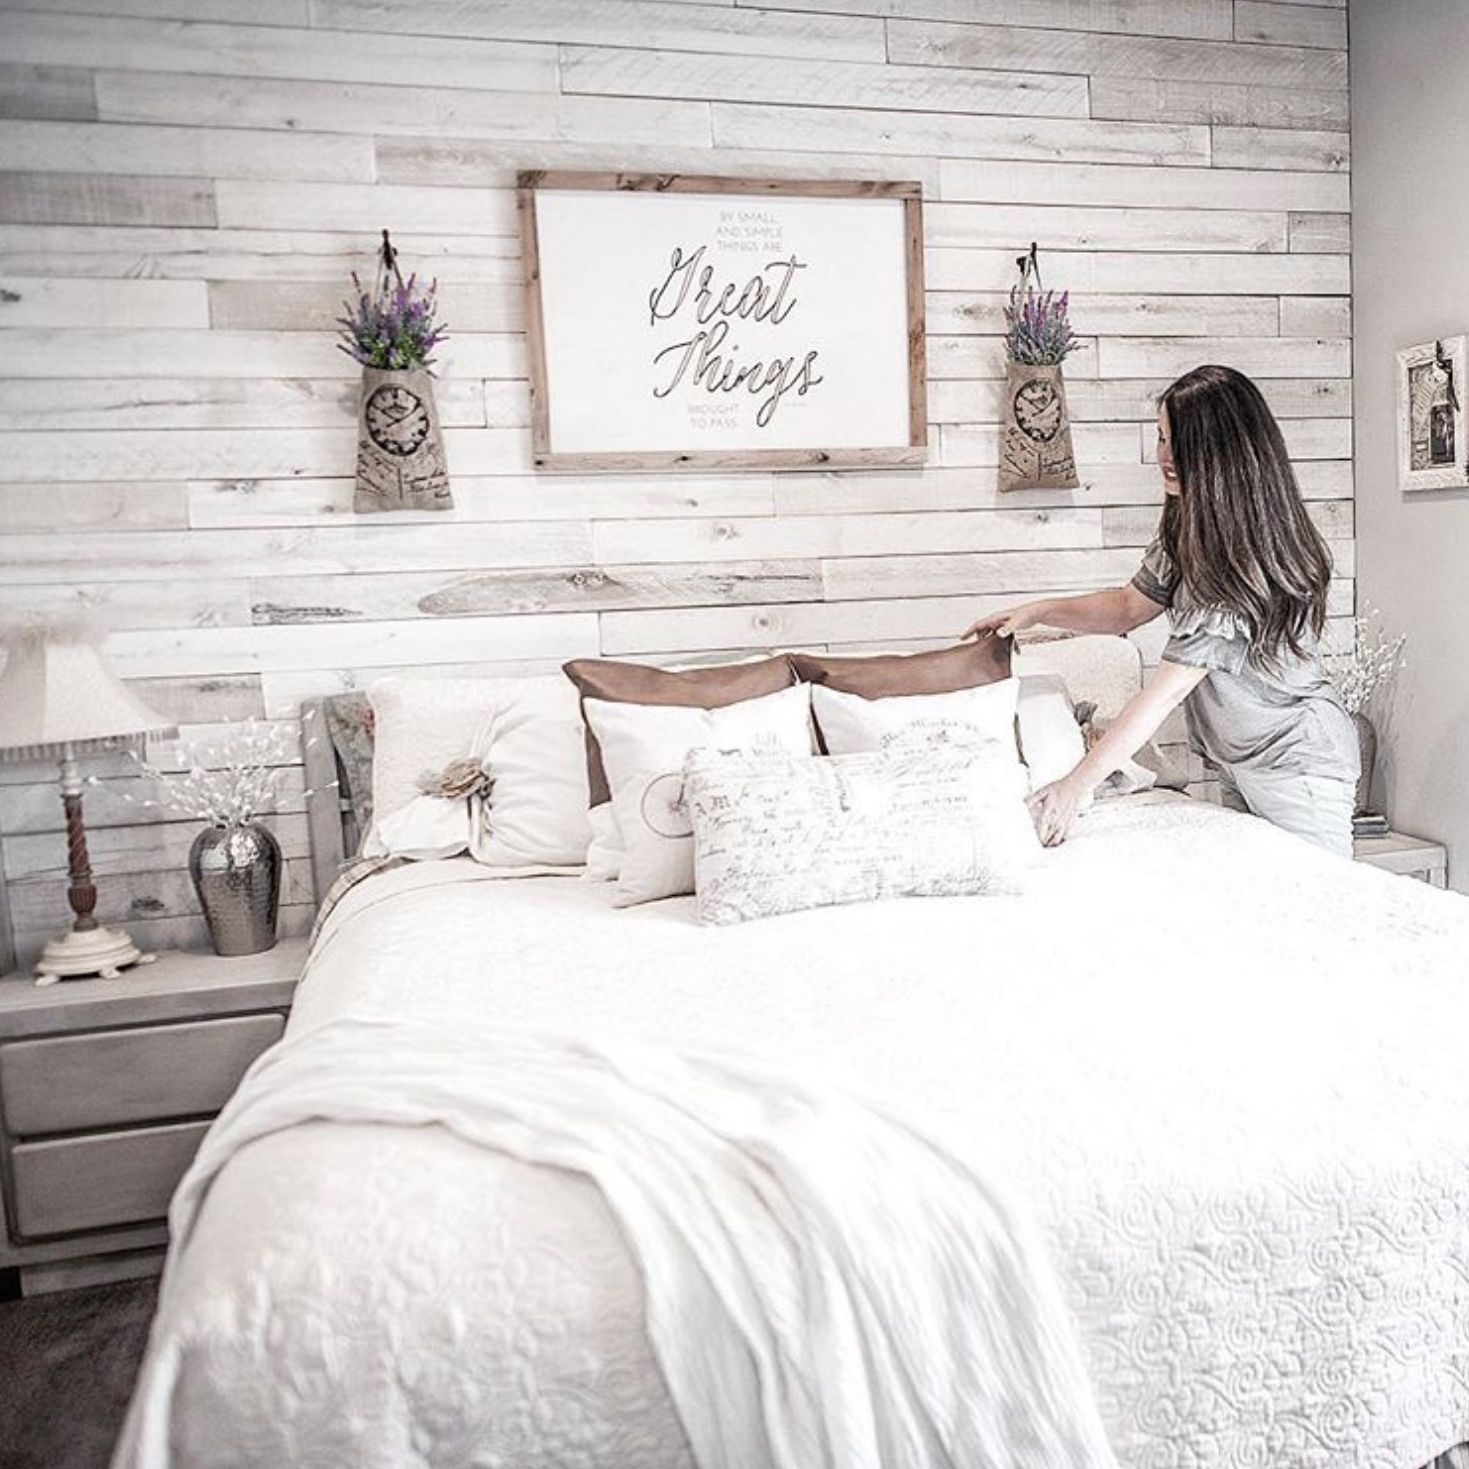 Our White Wash Wall Boards Add Character To This All White Bedroom Photo By Weaber Brand Rep Kelly Ba White Wash Walls Pallet Wall Bedroom Accent Wall Bedroom